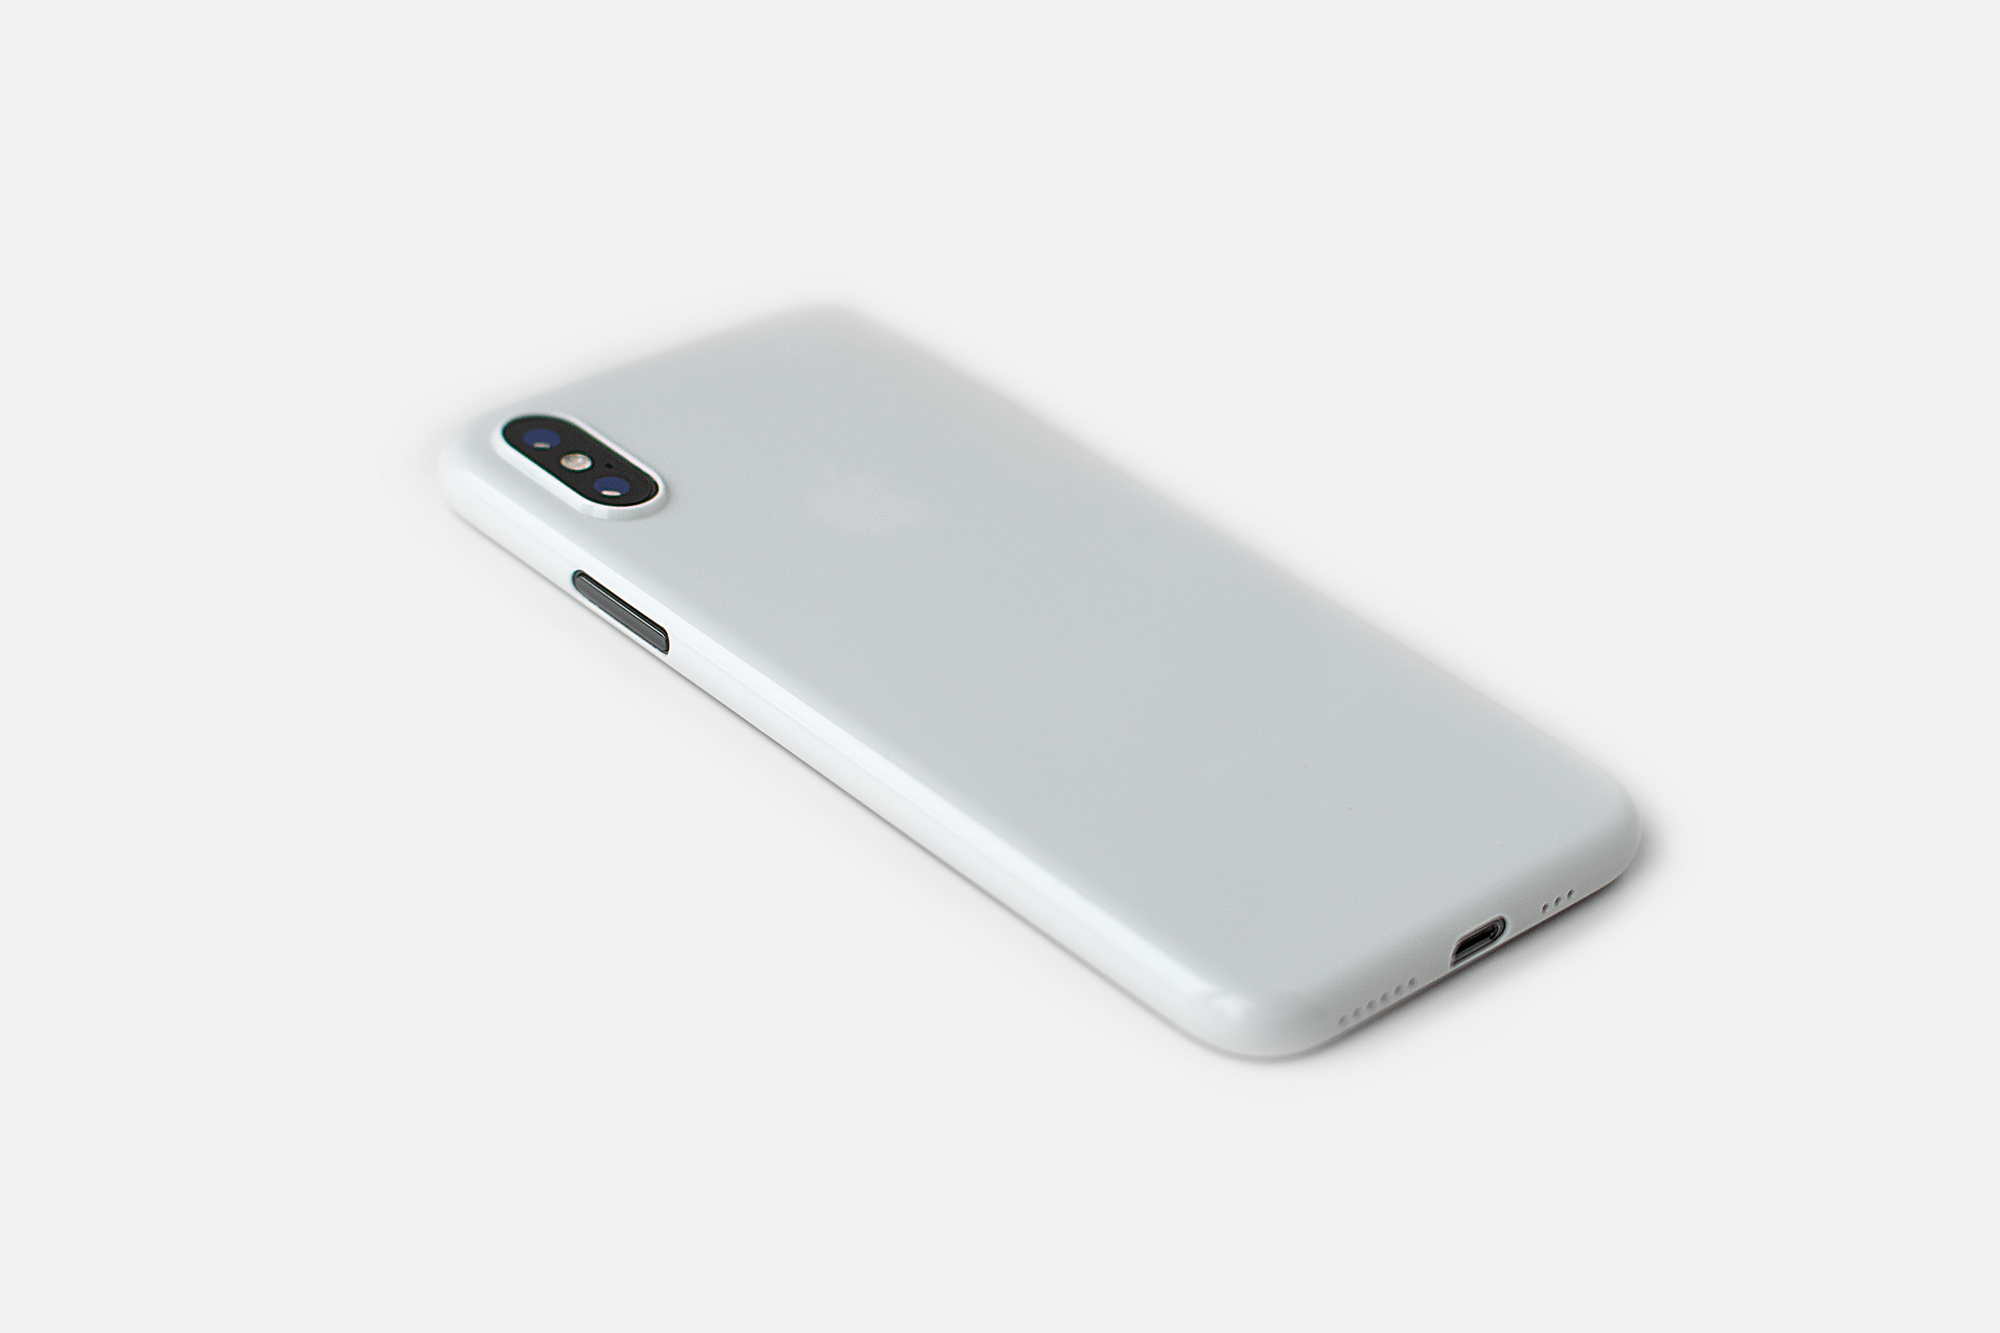 iPhone X - Glossy White Ultra Thin Phone Case